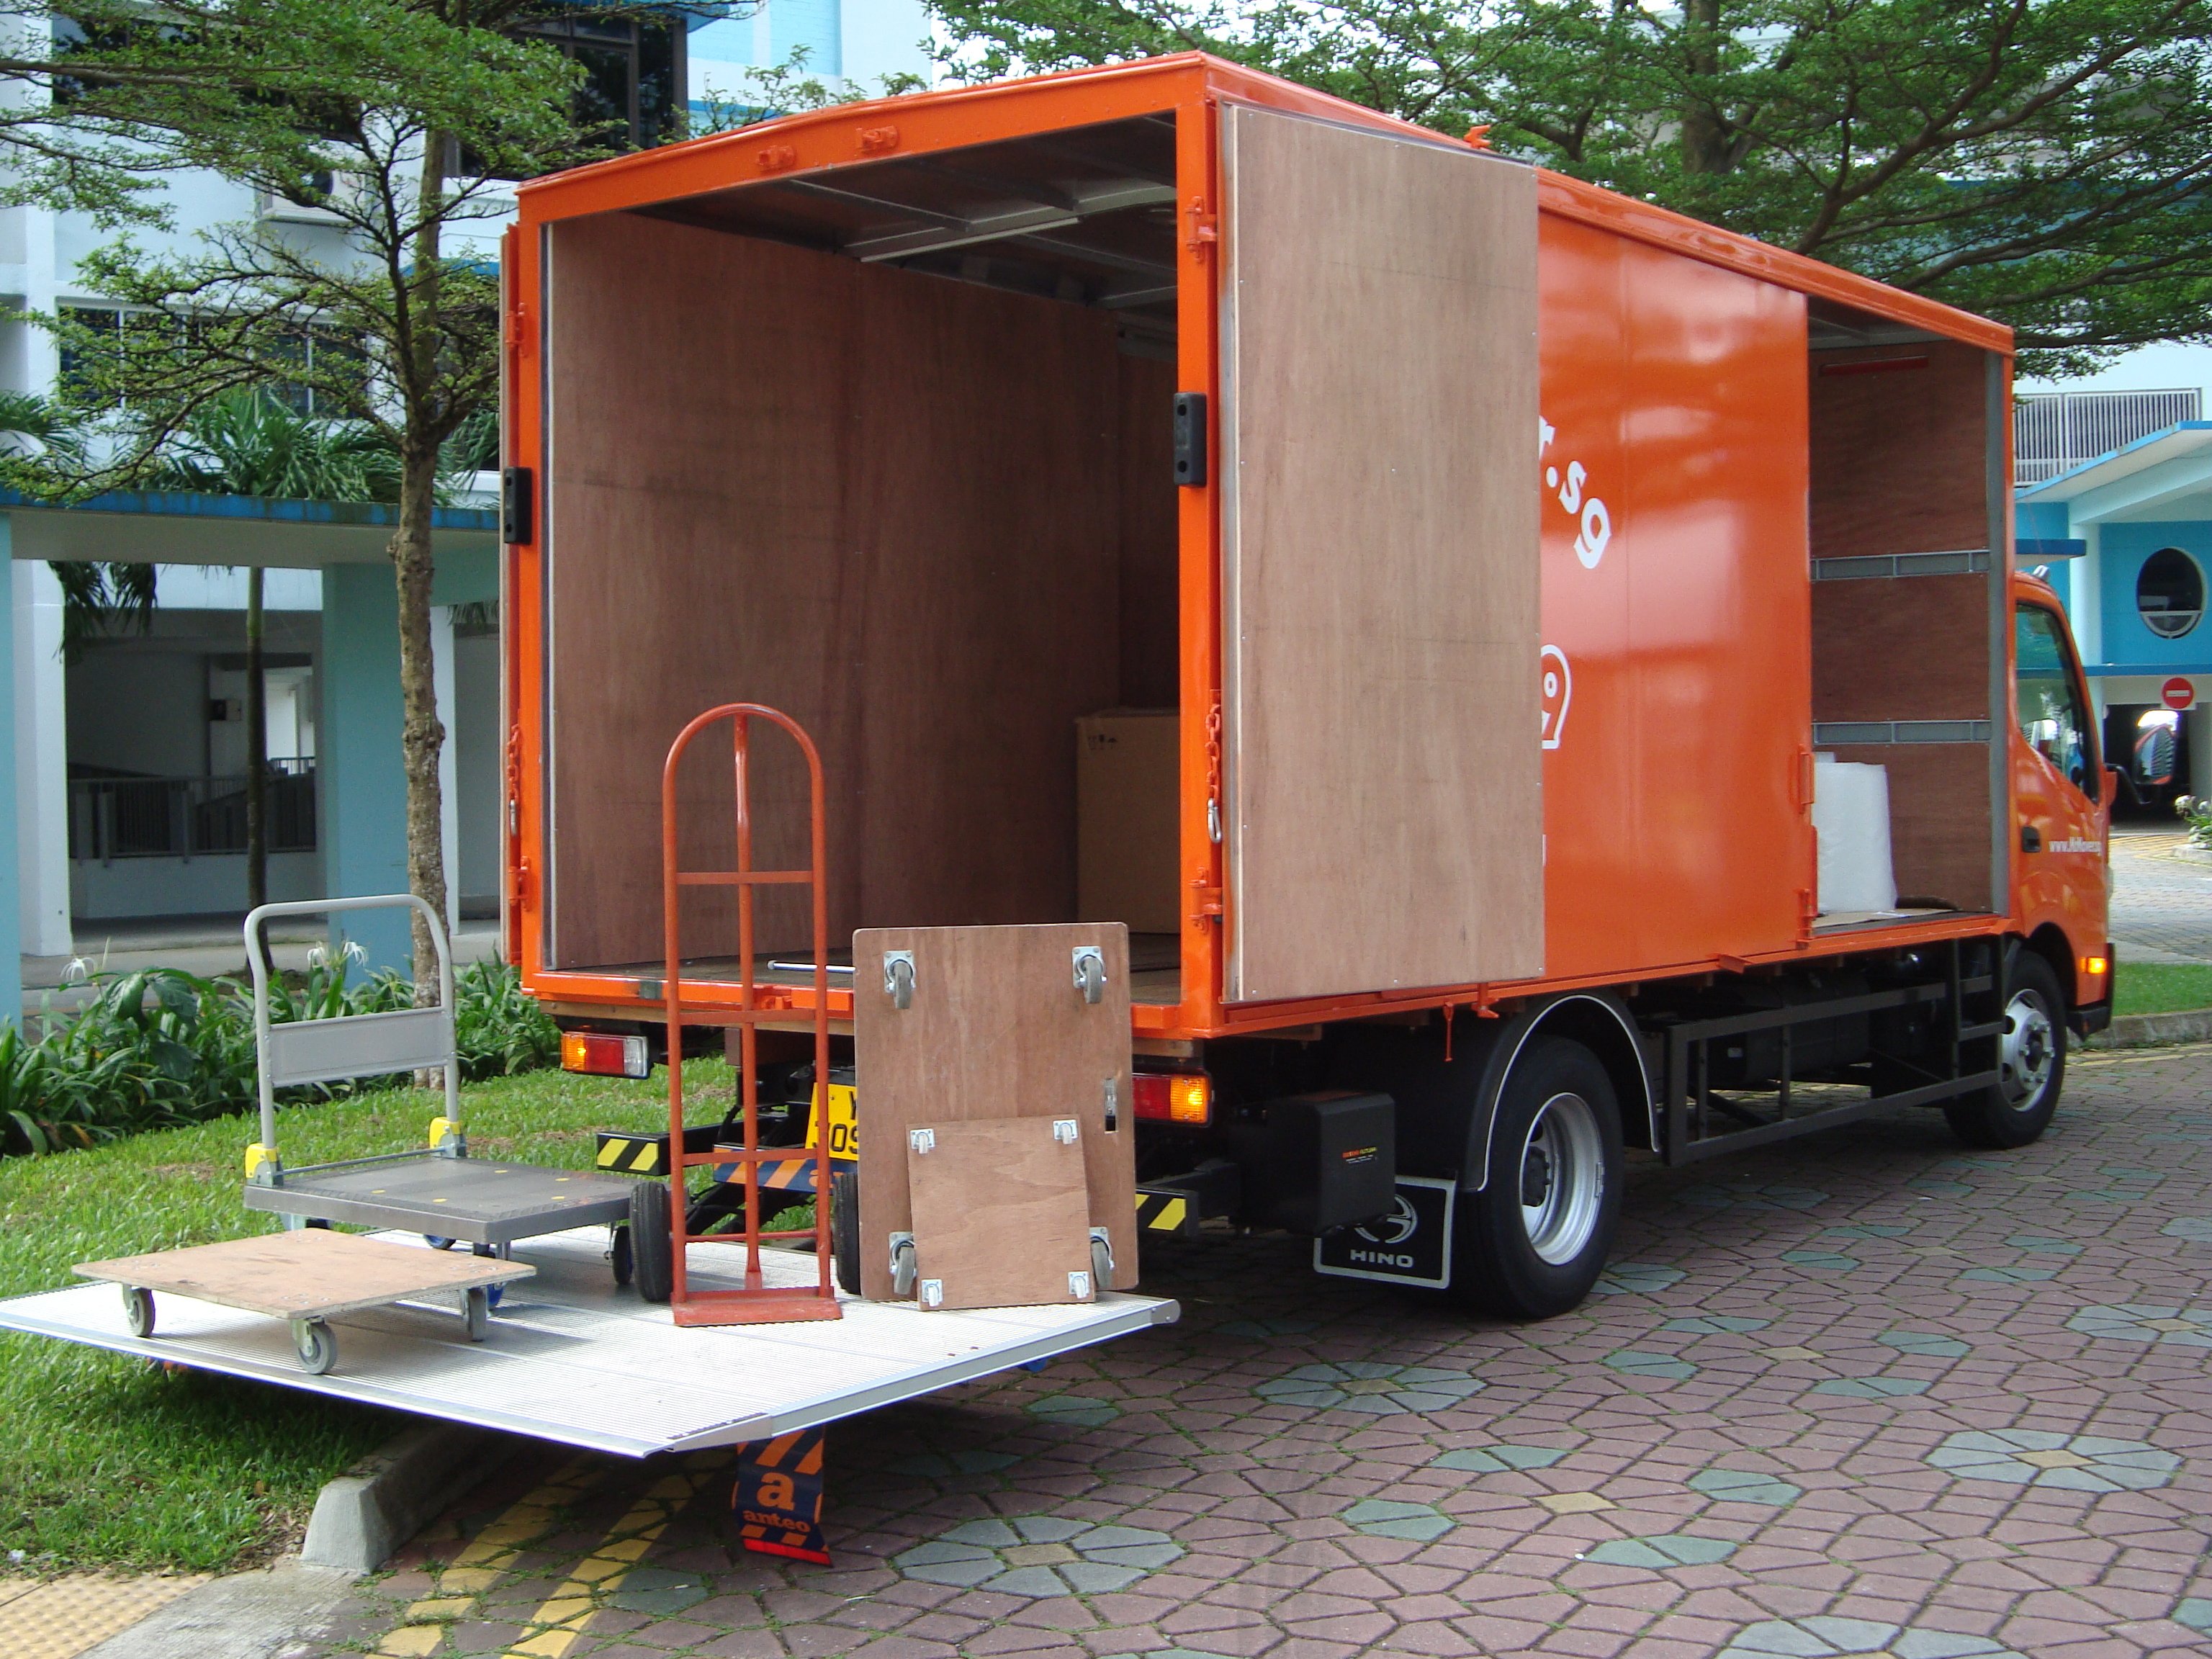 Tailgate lorry for heavy goods